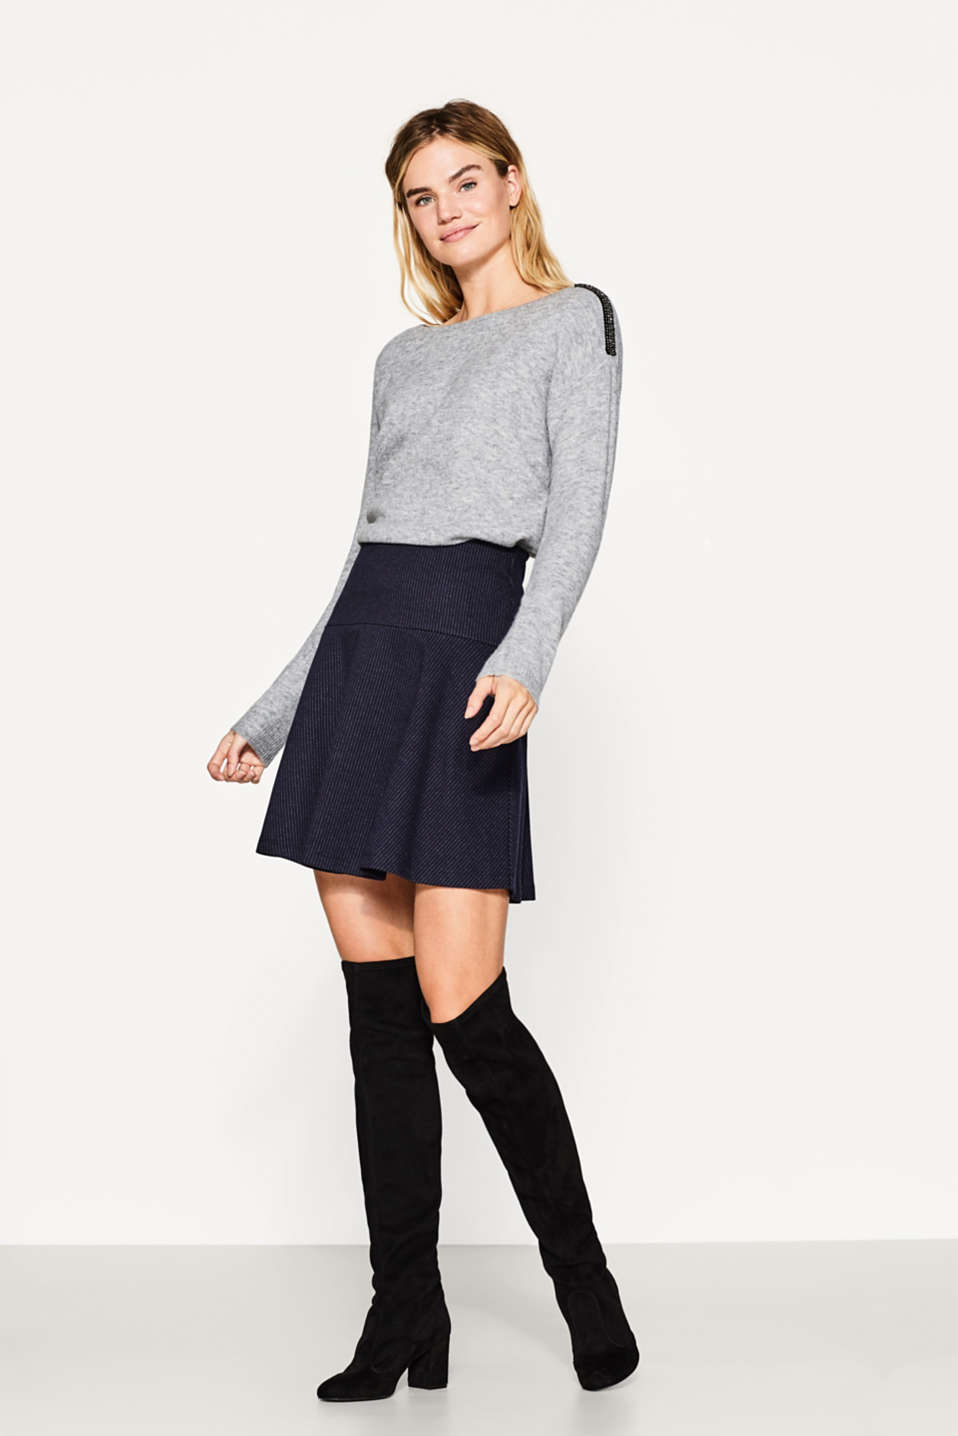 Jumper with glam embellished shoulders